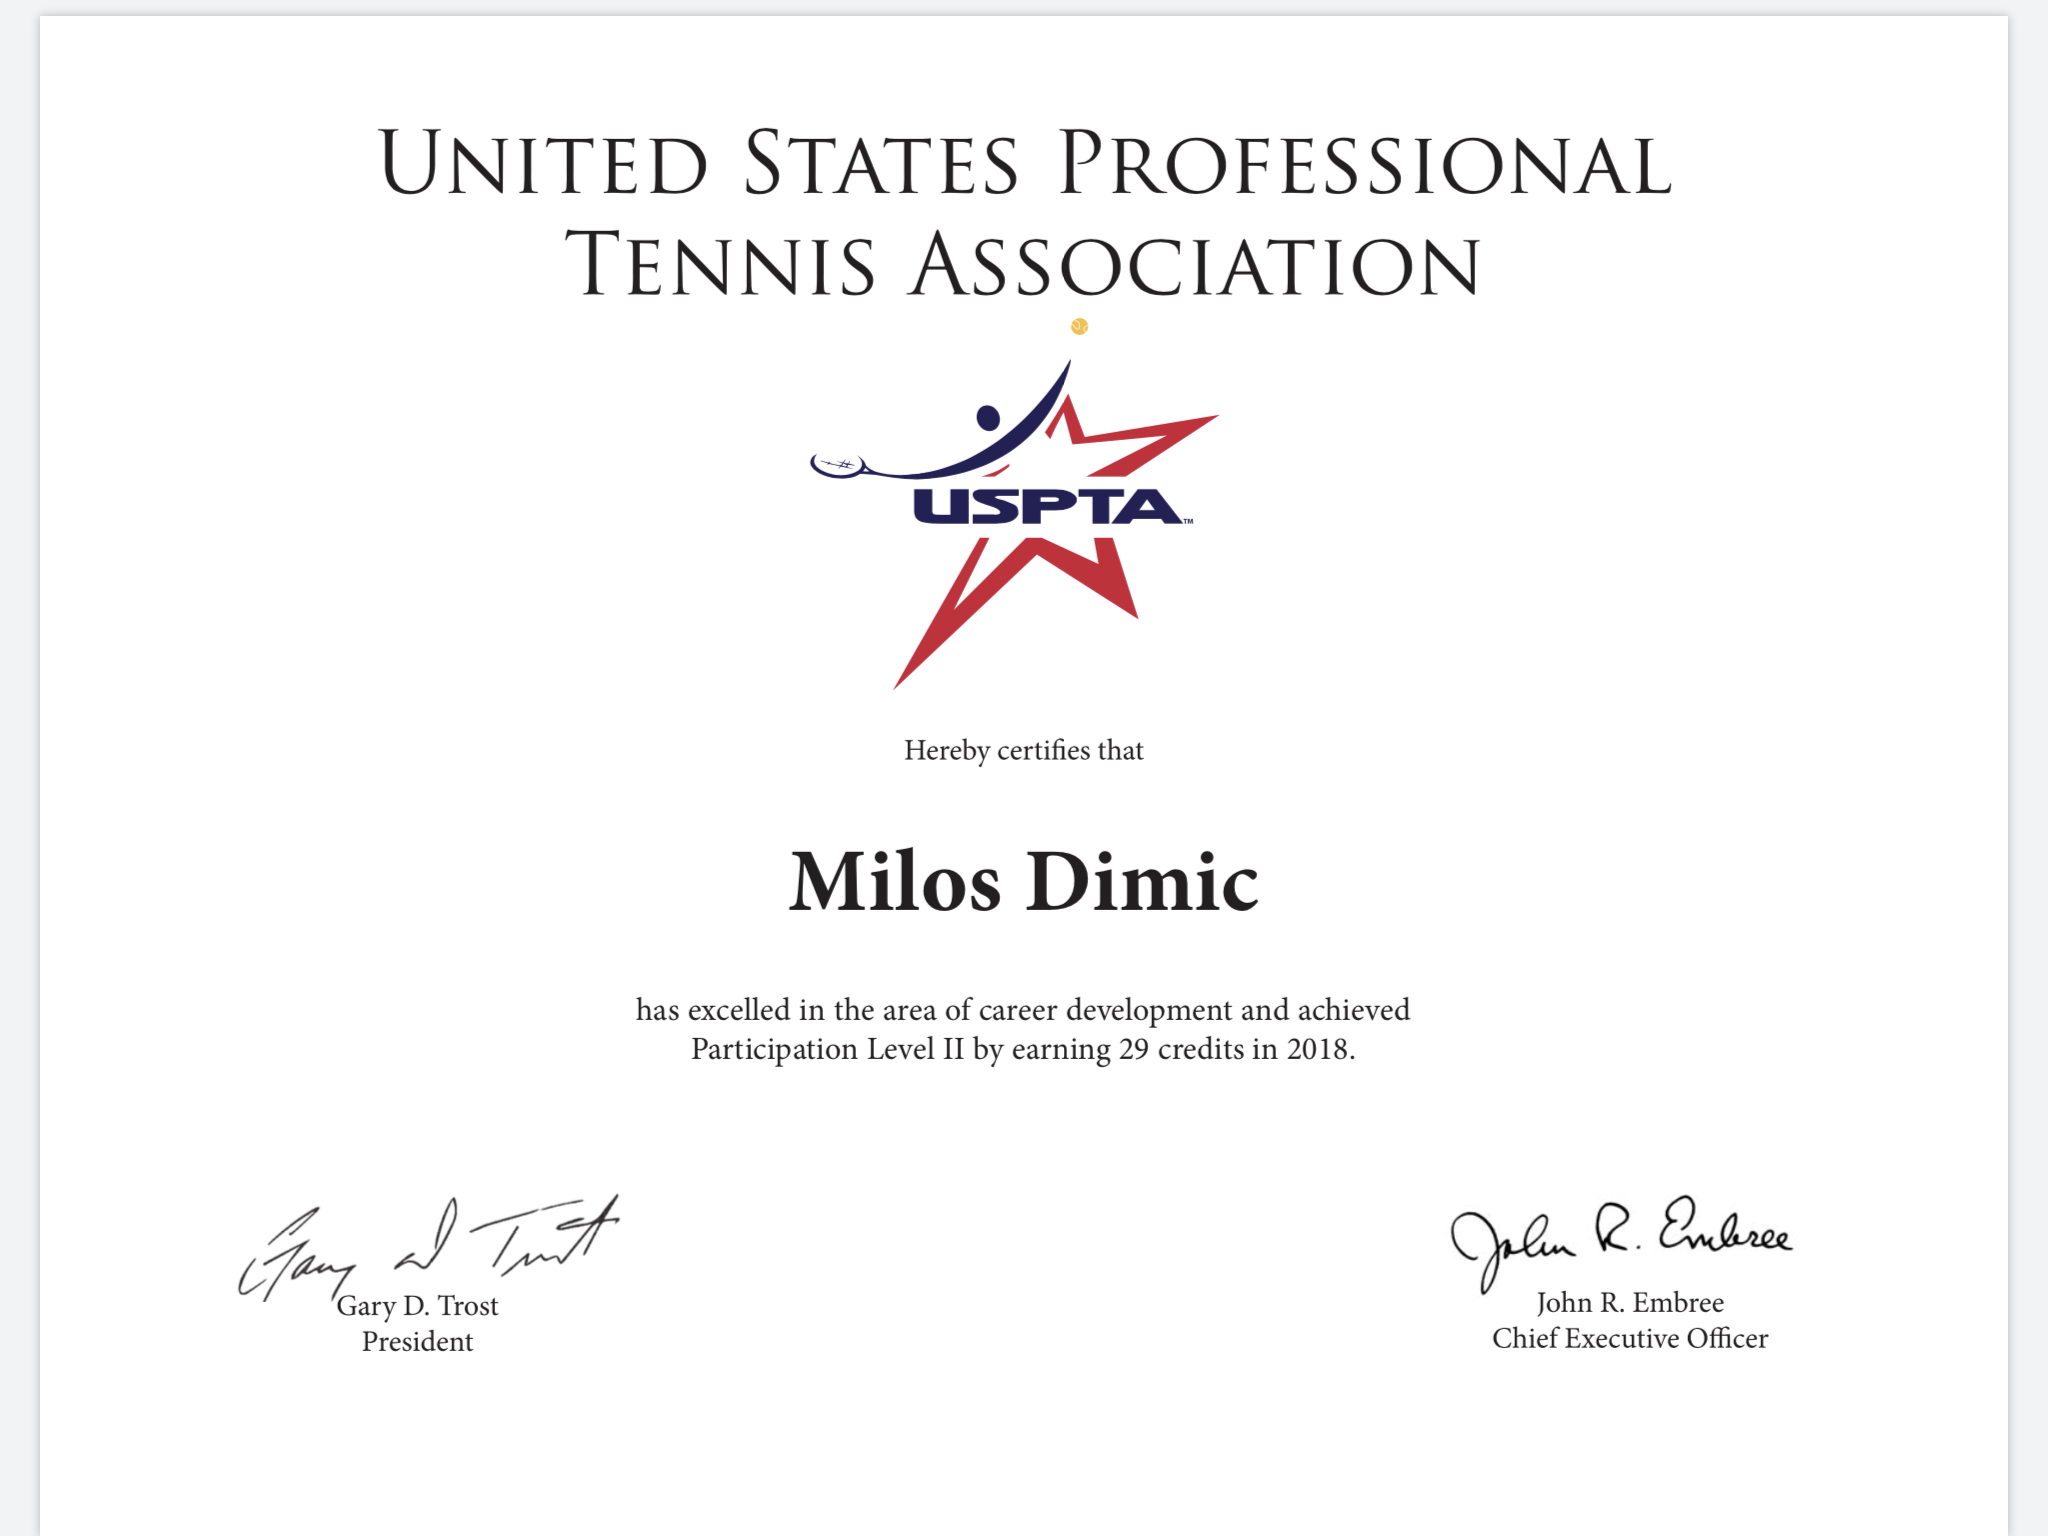 Thank you USPTA